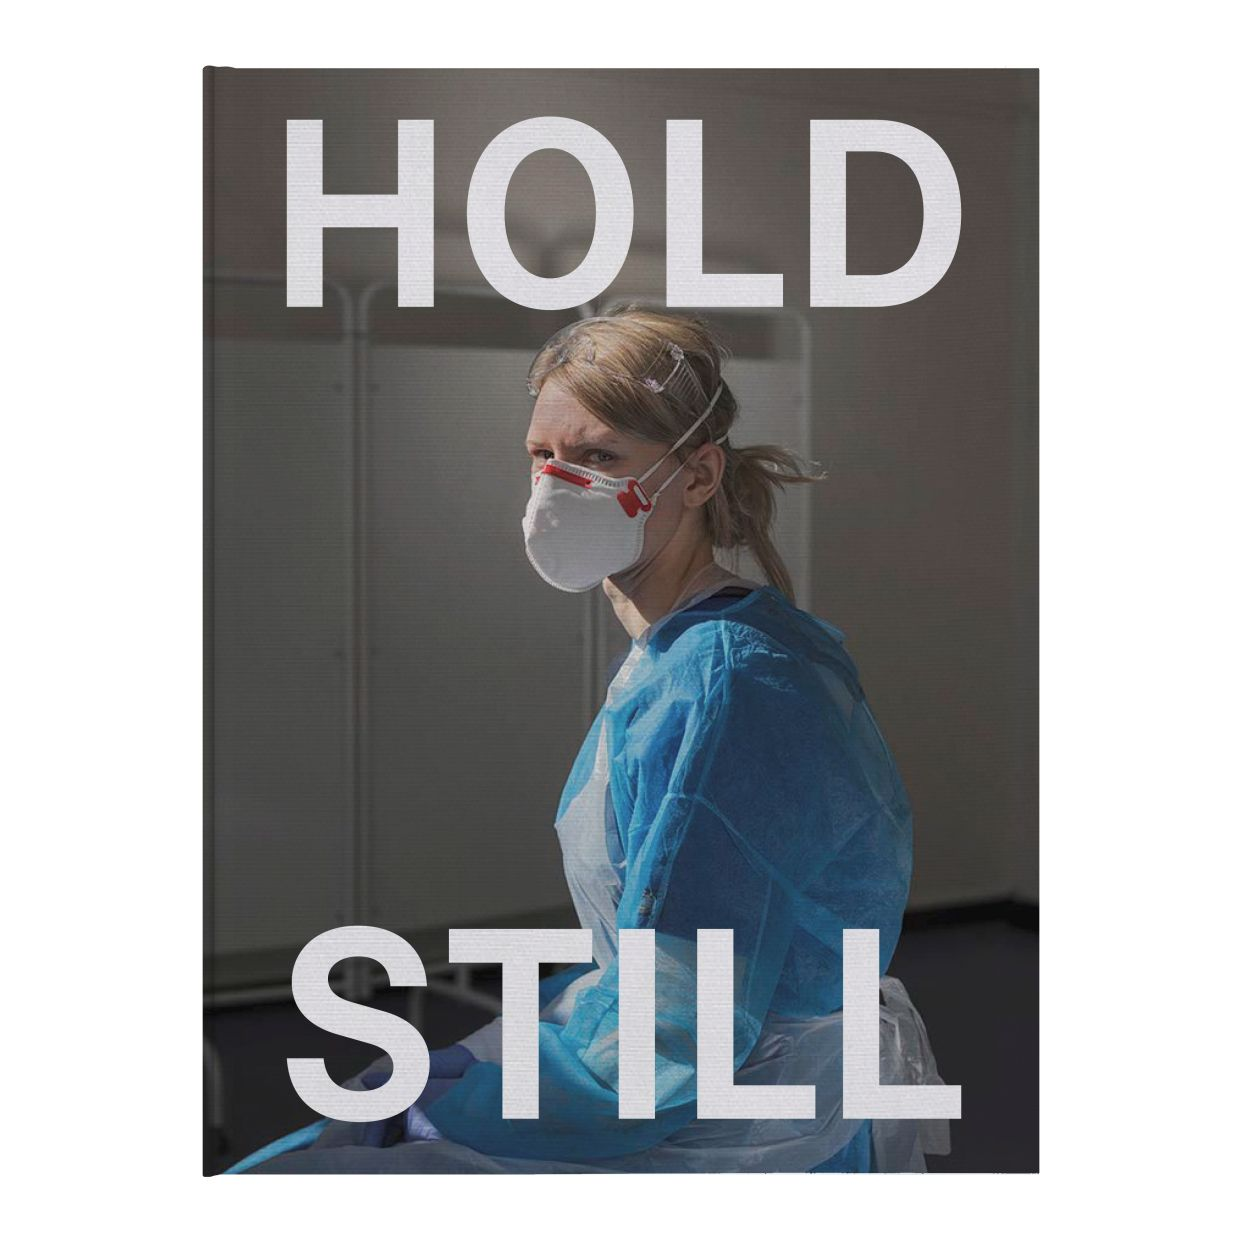 The front cover of the new book 'Hold Still: A Portrait Of Our Nation In 2020'.